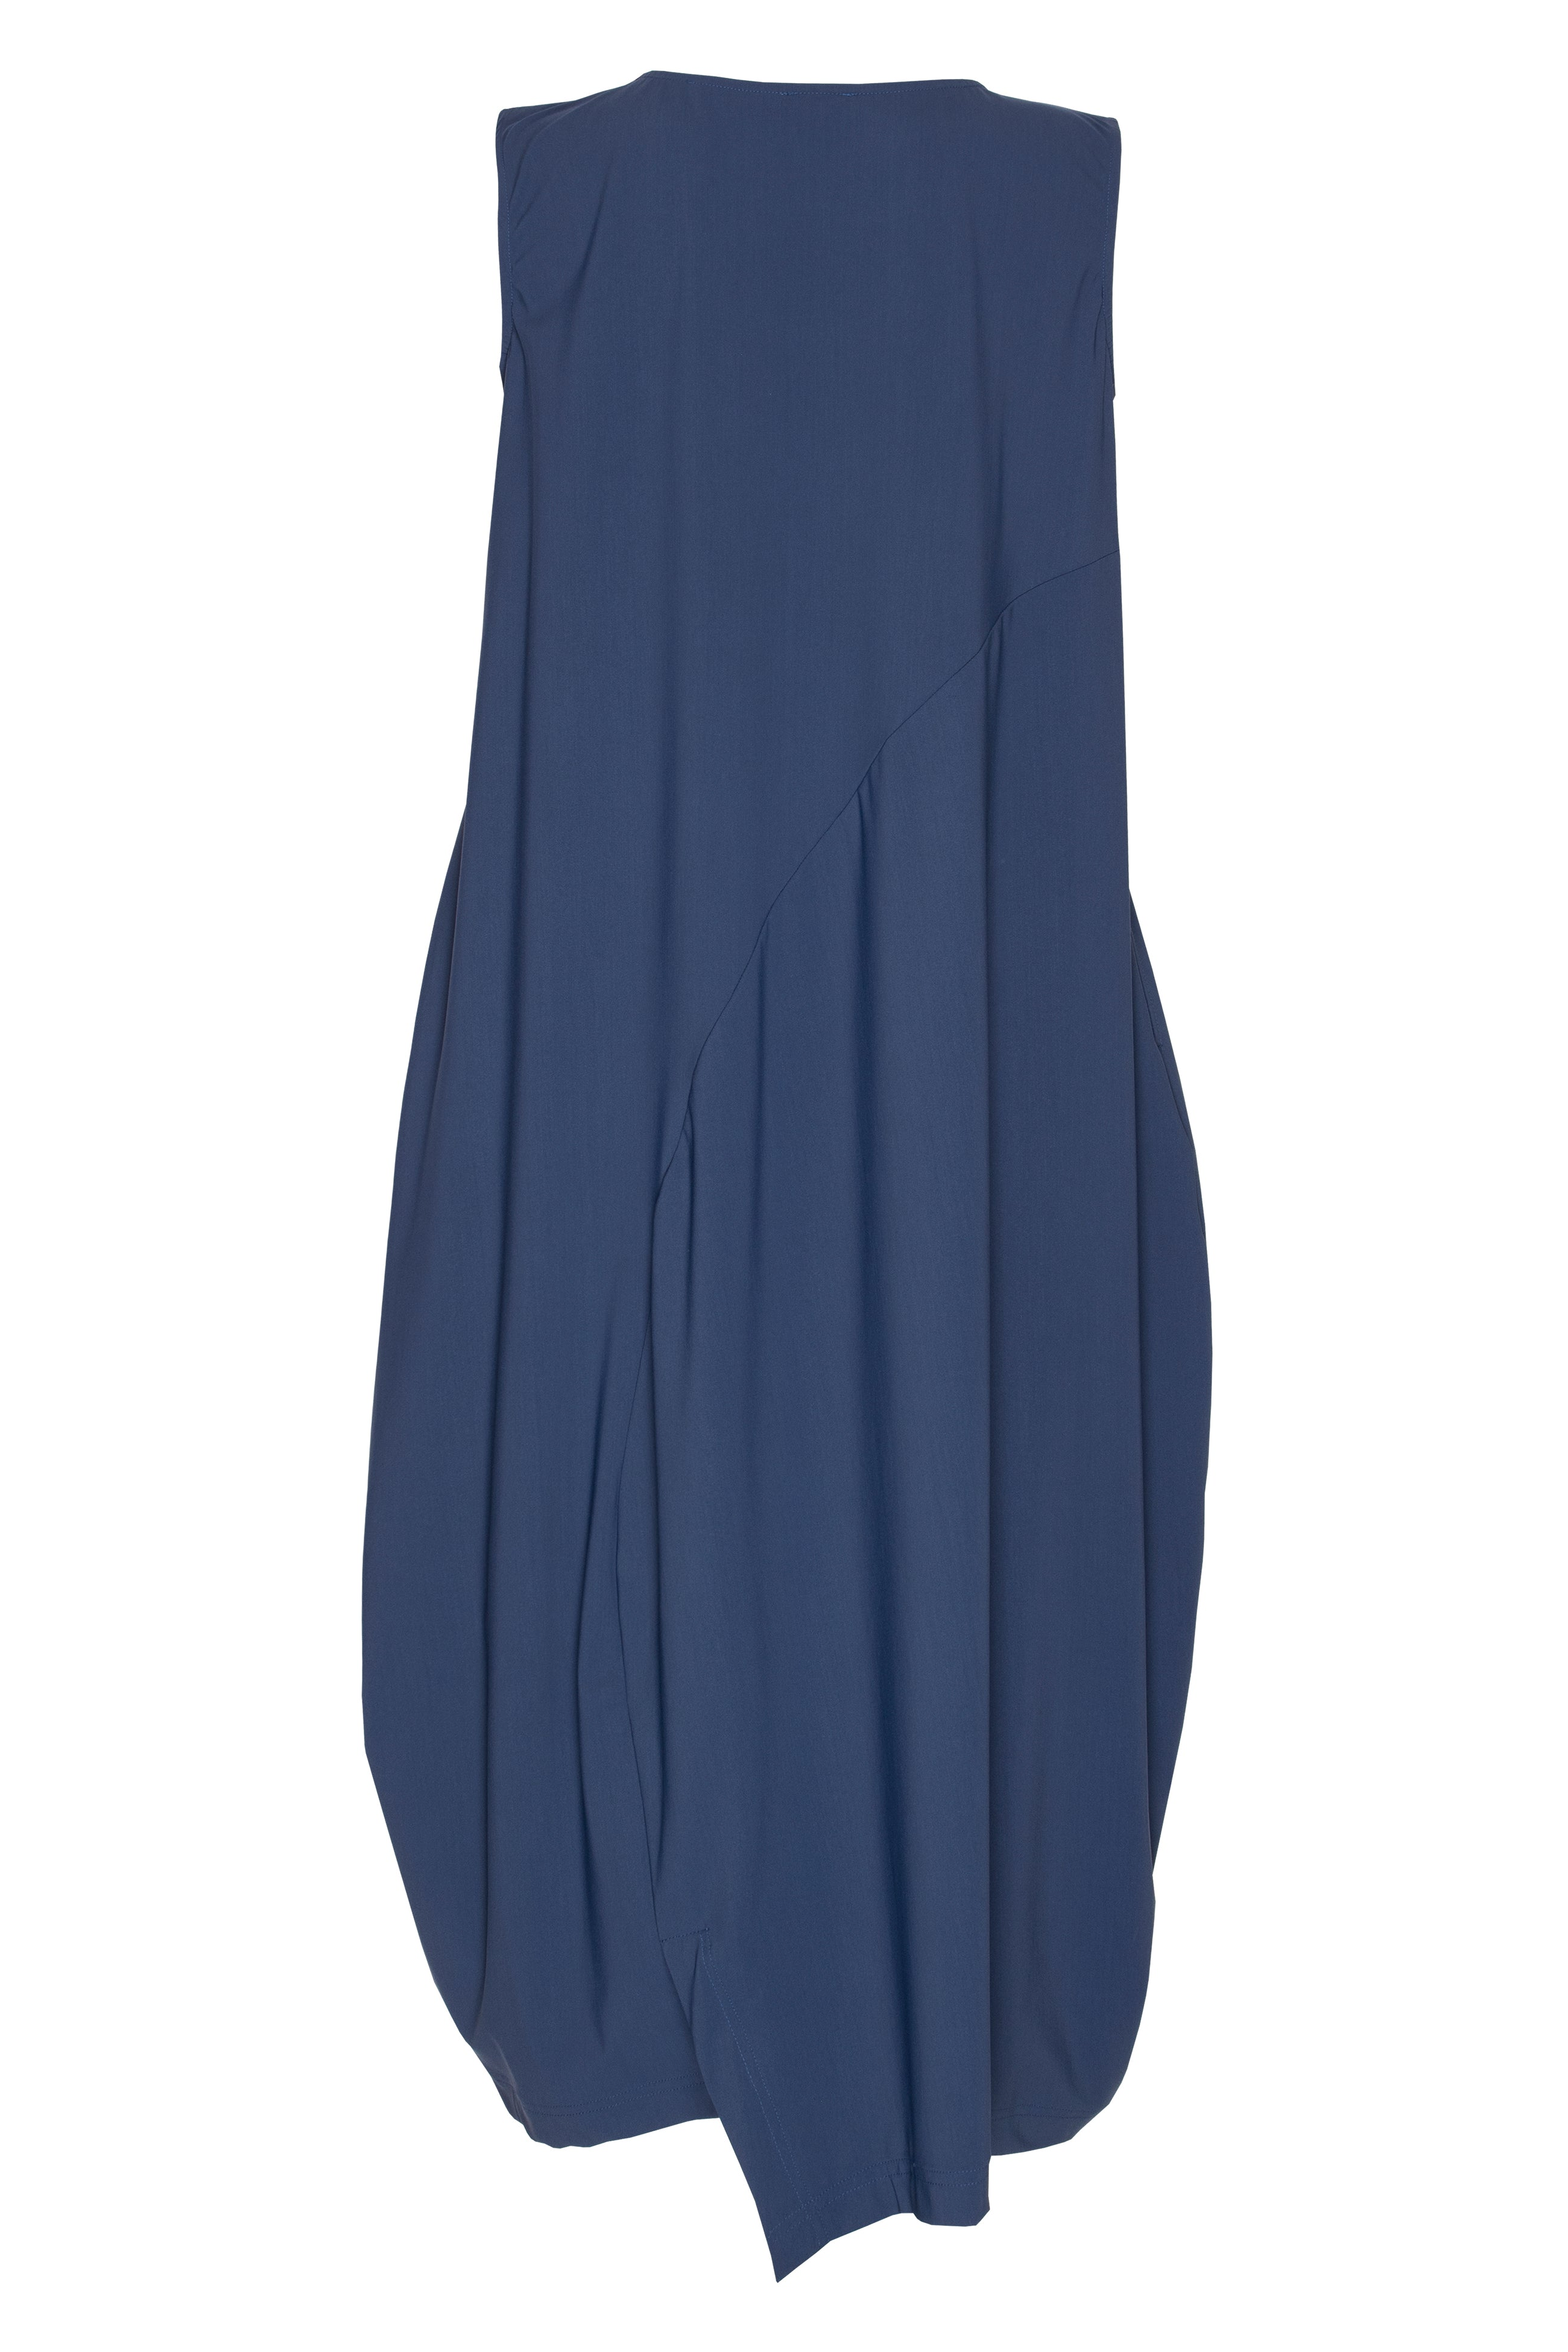 Indigo Jersey Asymmetric Panel Singlet Dress 5265